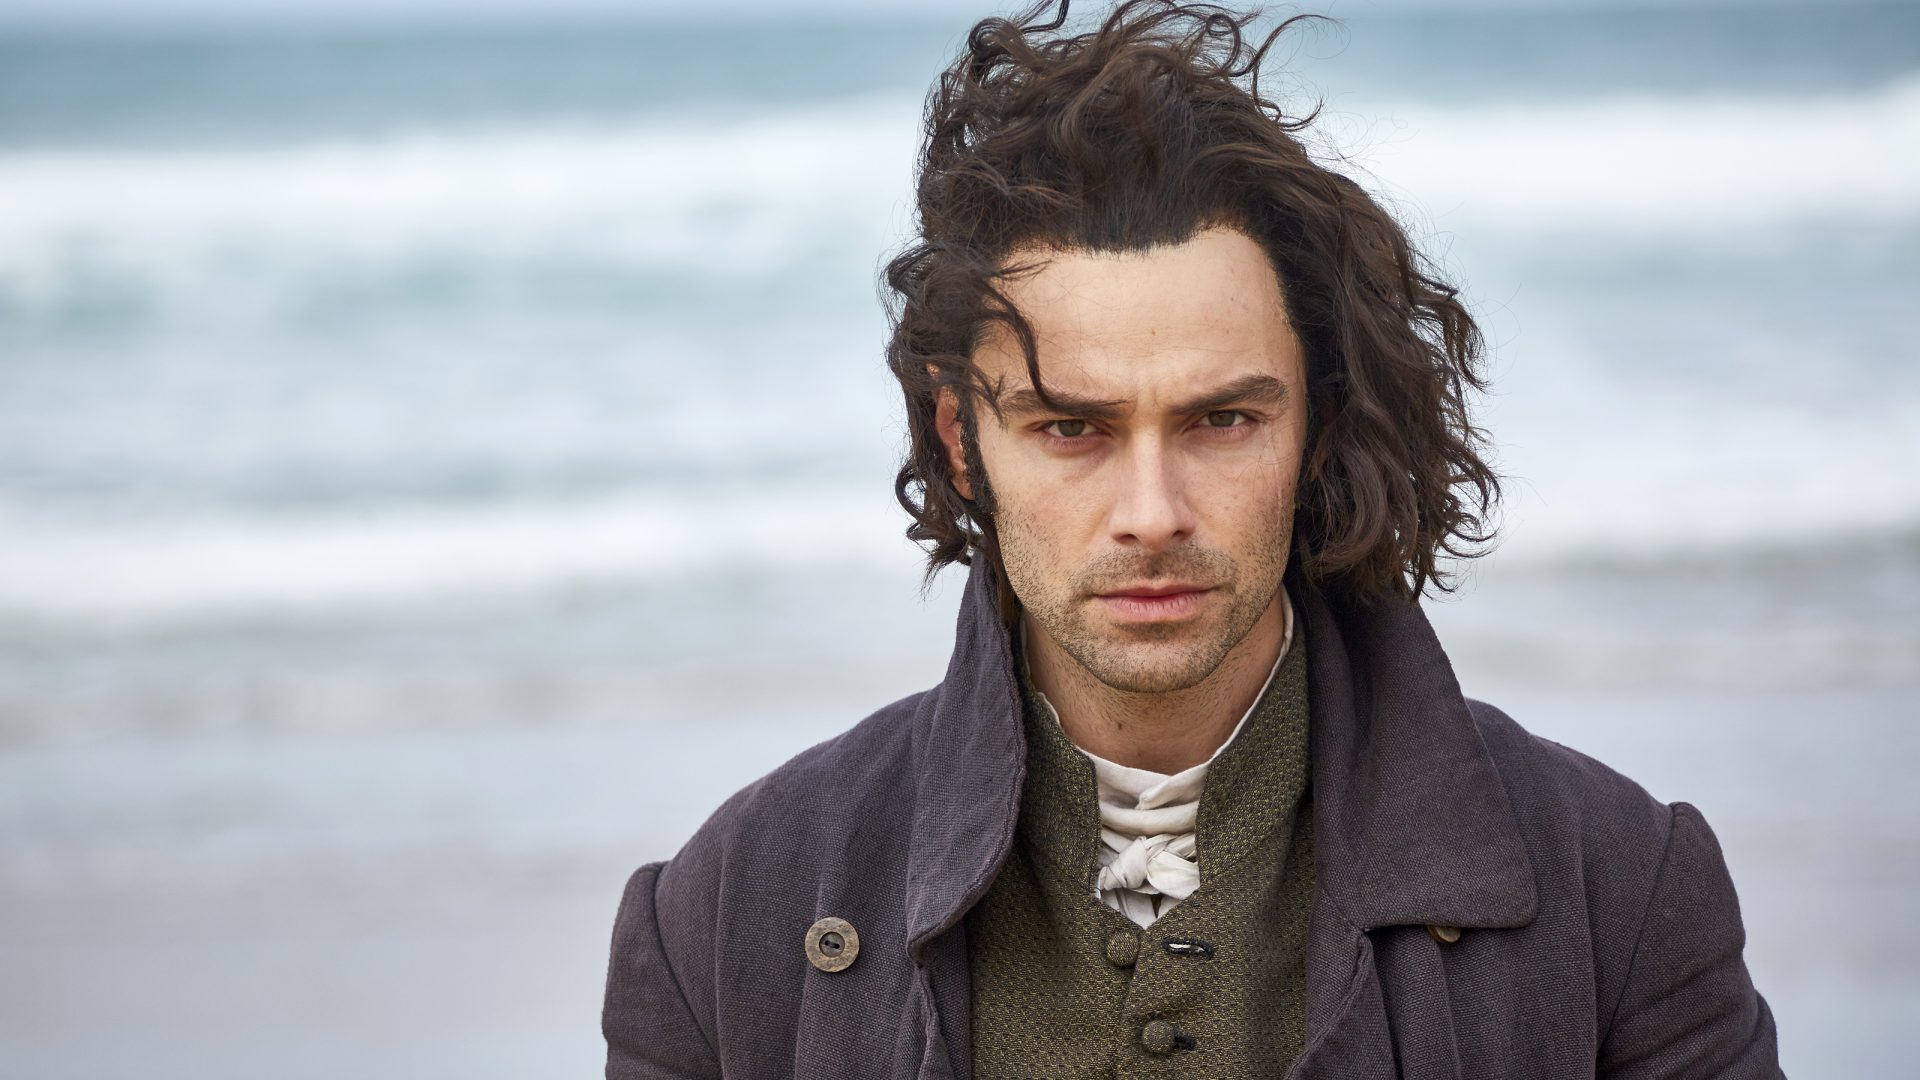 'Poldark' Season 4 Is Coming to Amazon Prime in May